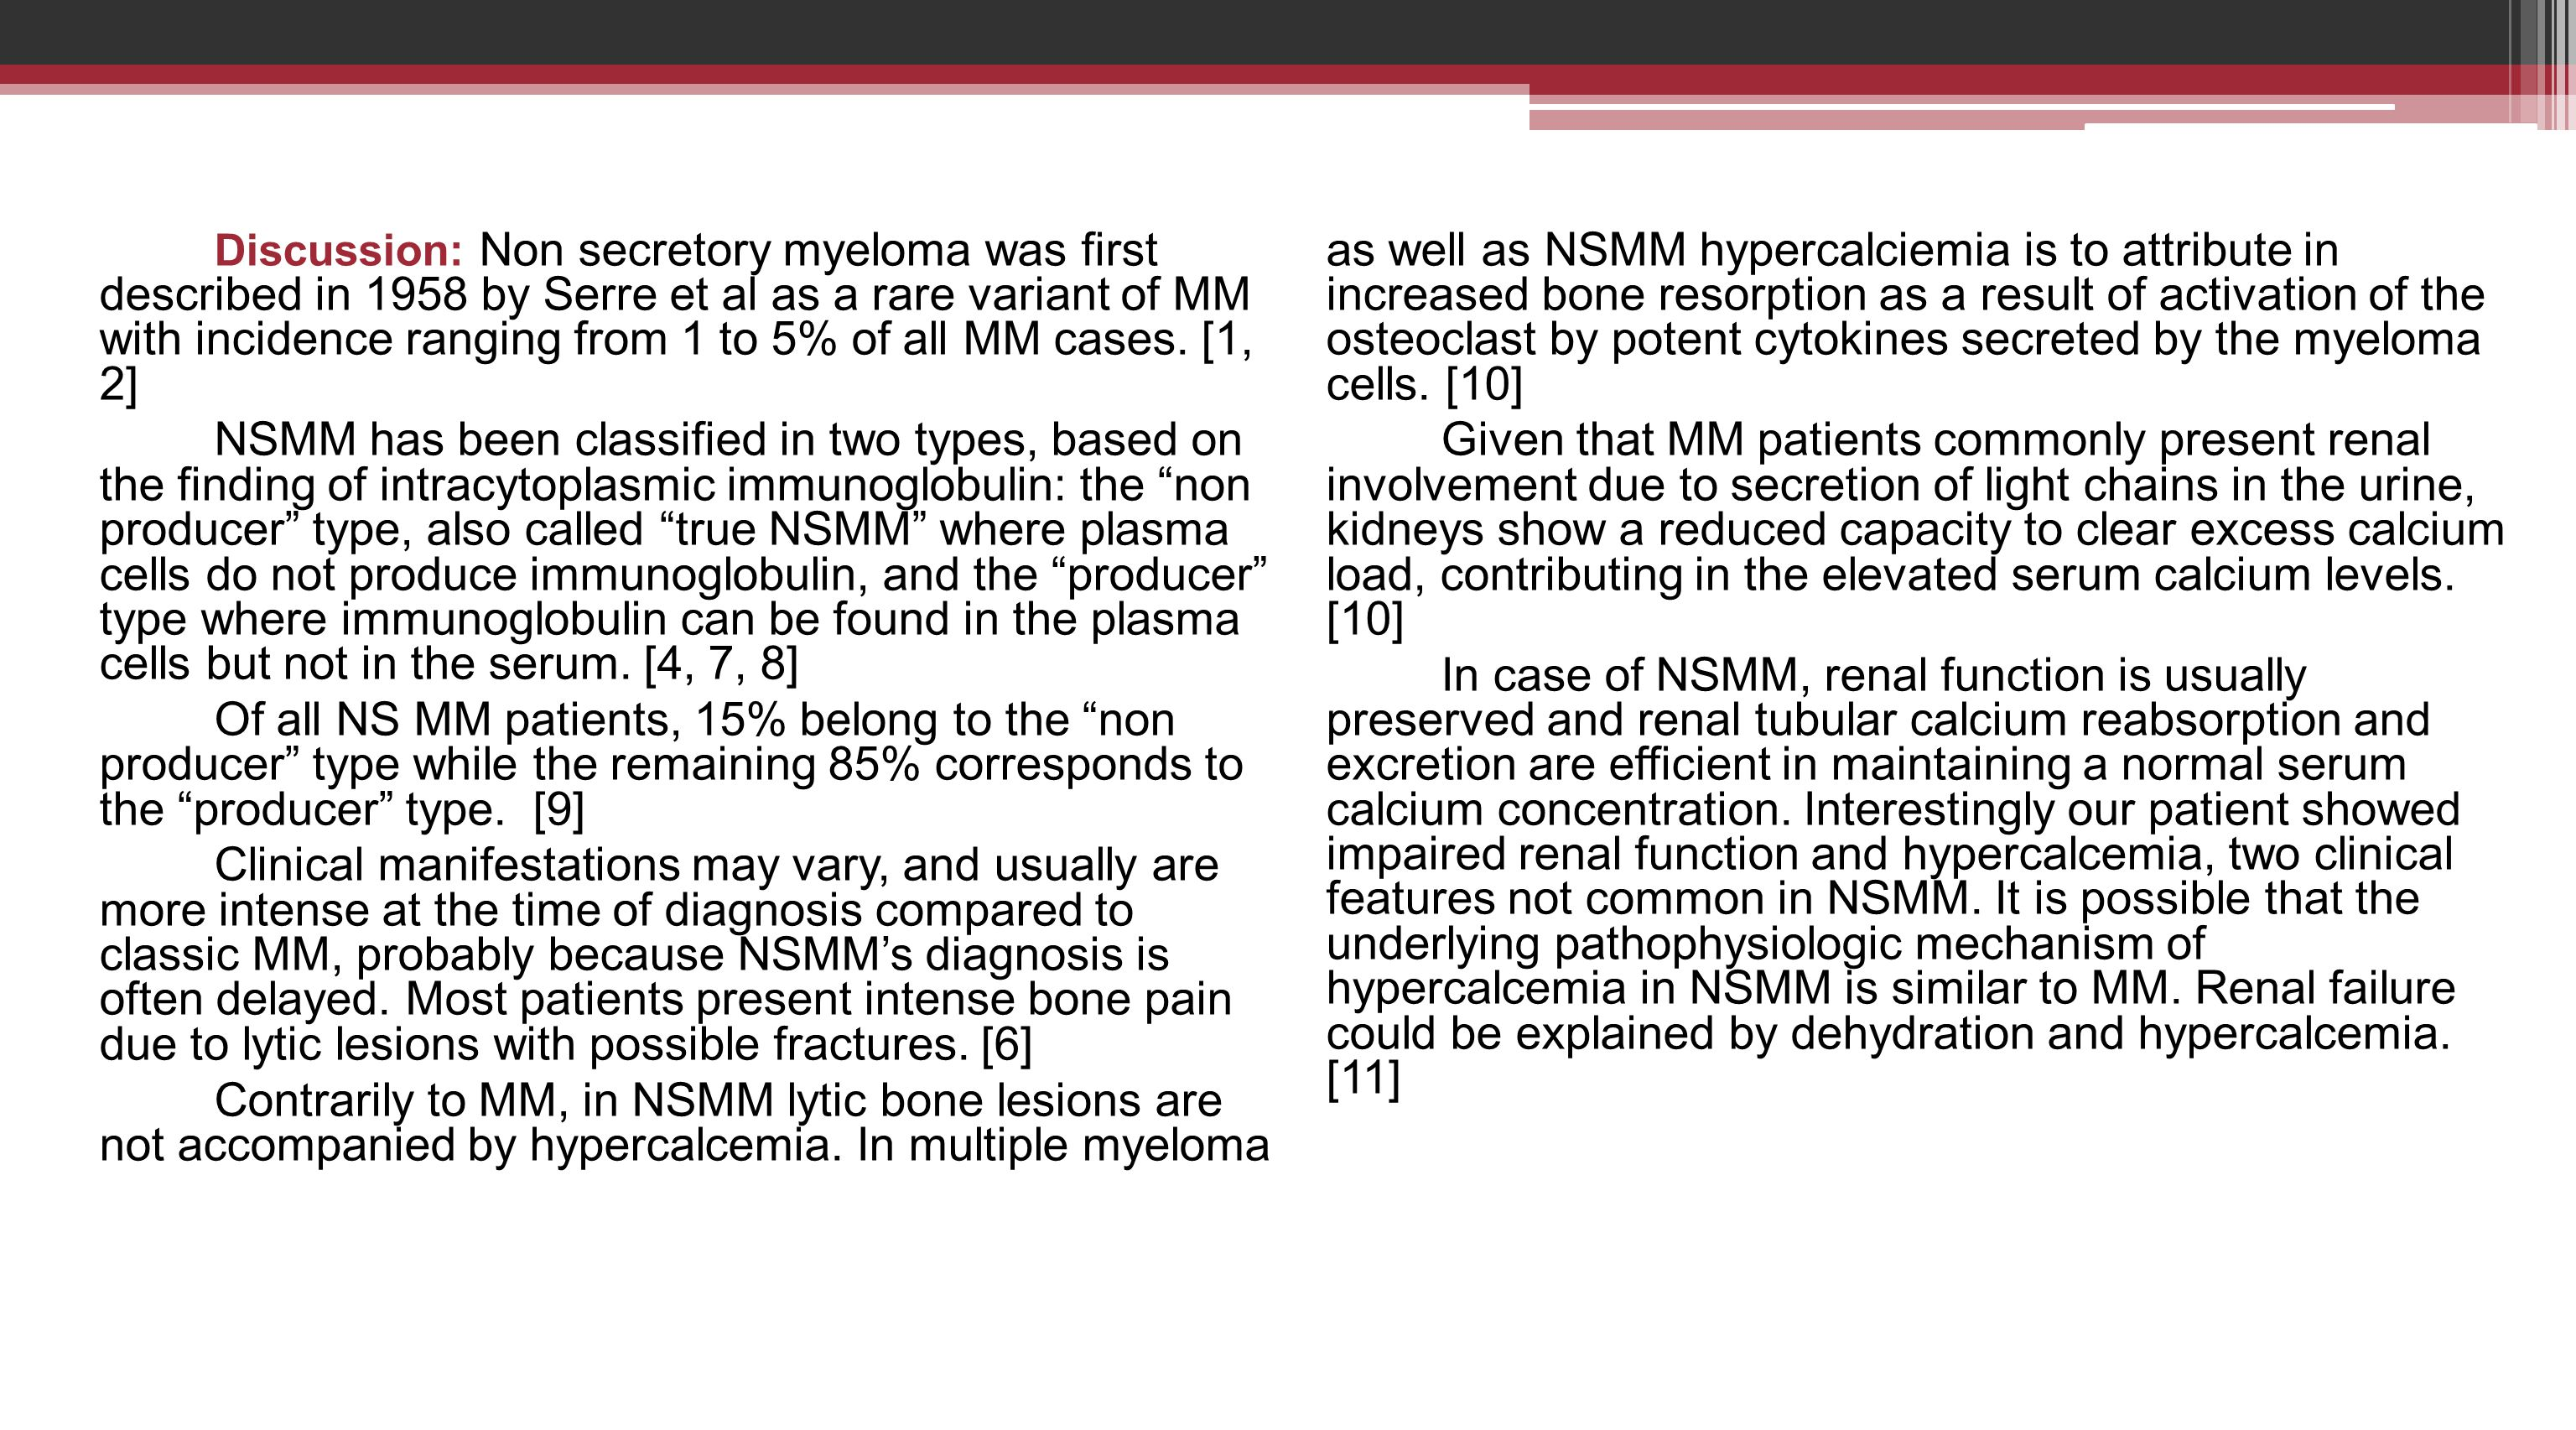 Contrarily to MM, in NSMM lytic bone lesions are not accompanied by hypercalcemia. In multiple myeloma as well as NSMM hypercalciemia is to attribute in increased bone resorption as a result of activation of the osteoclast by potent cytokines secreted by the myeloma cells. [10]